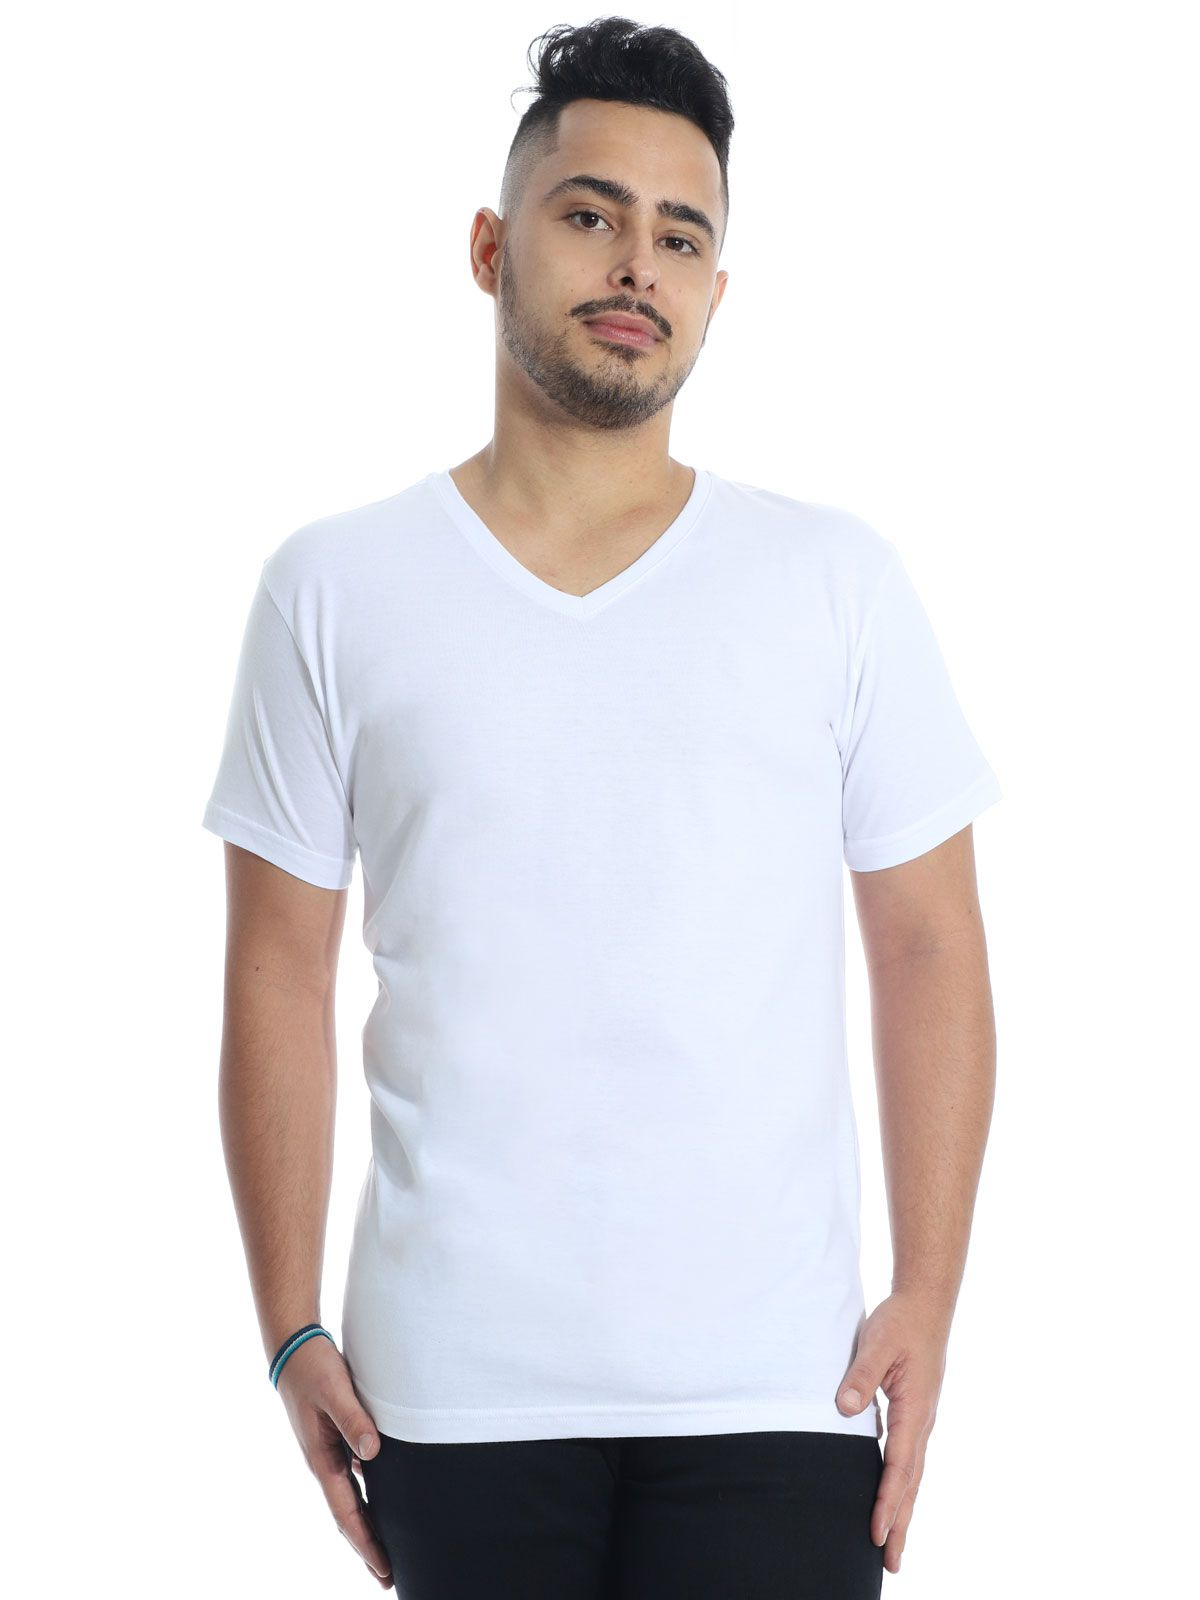 Camiseta Anistia Slim Fit Decote V. Lisa Branco